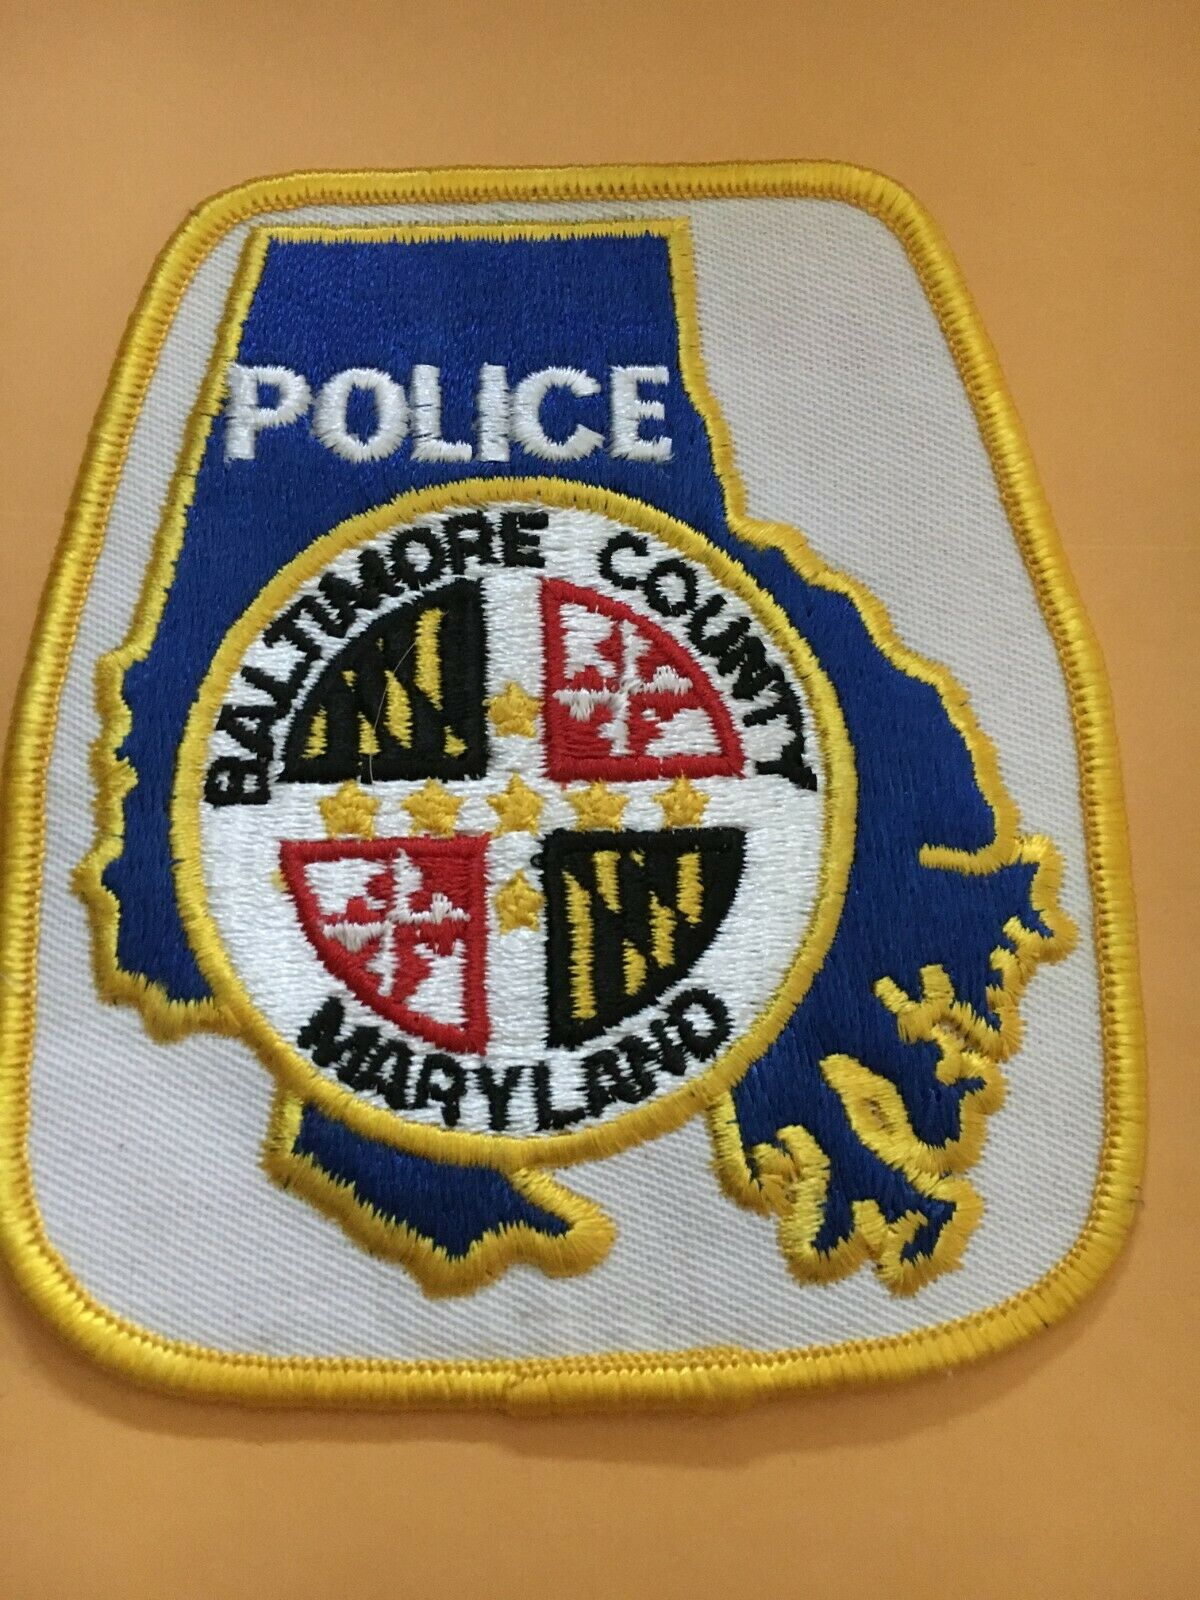 BALTIMORE COUNTY MARYLAND POLICE DEPT PATCH